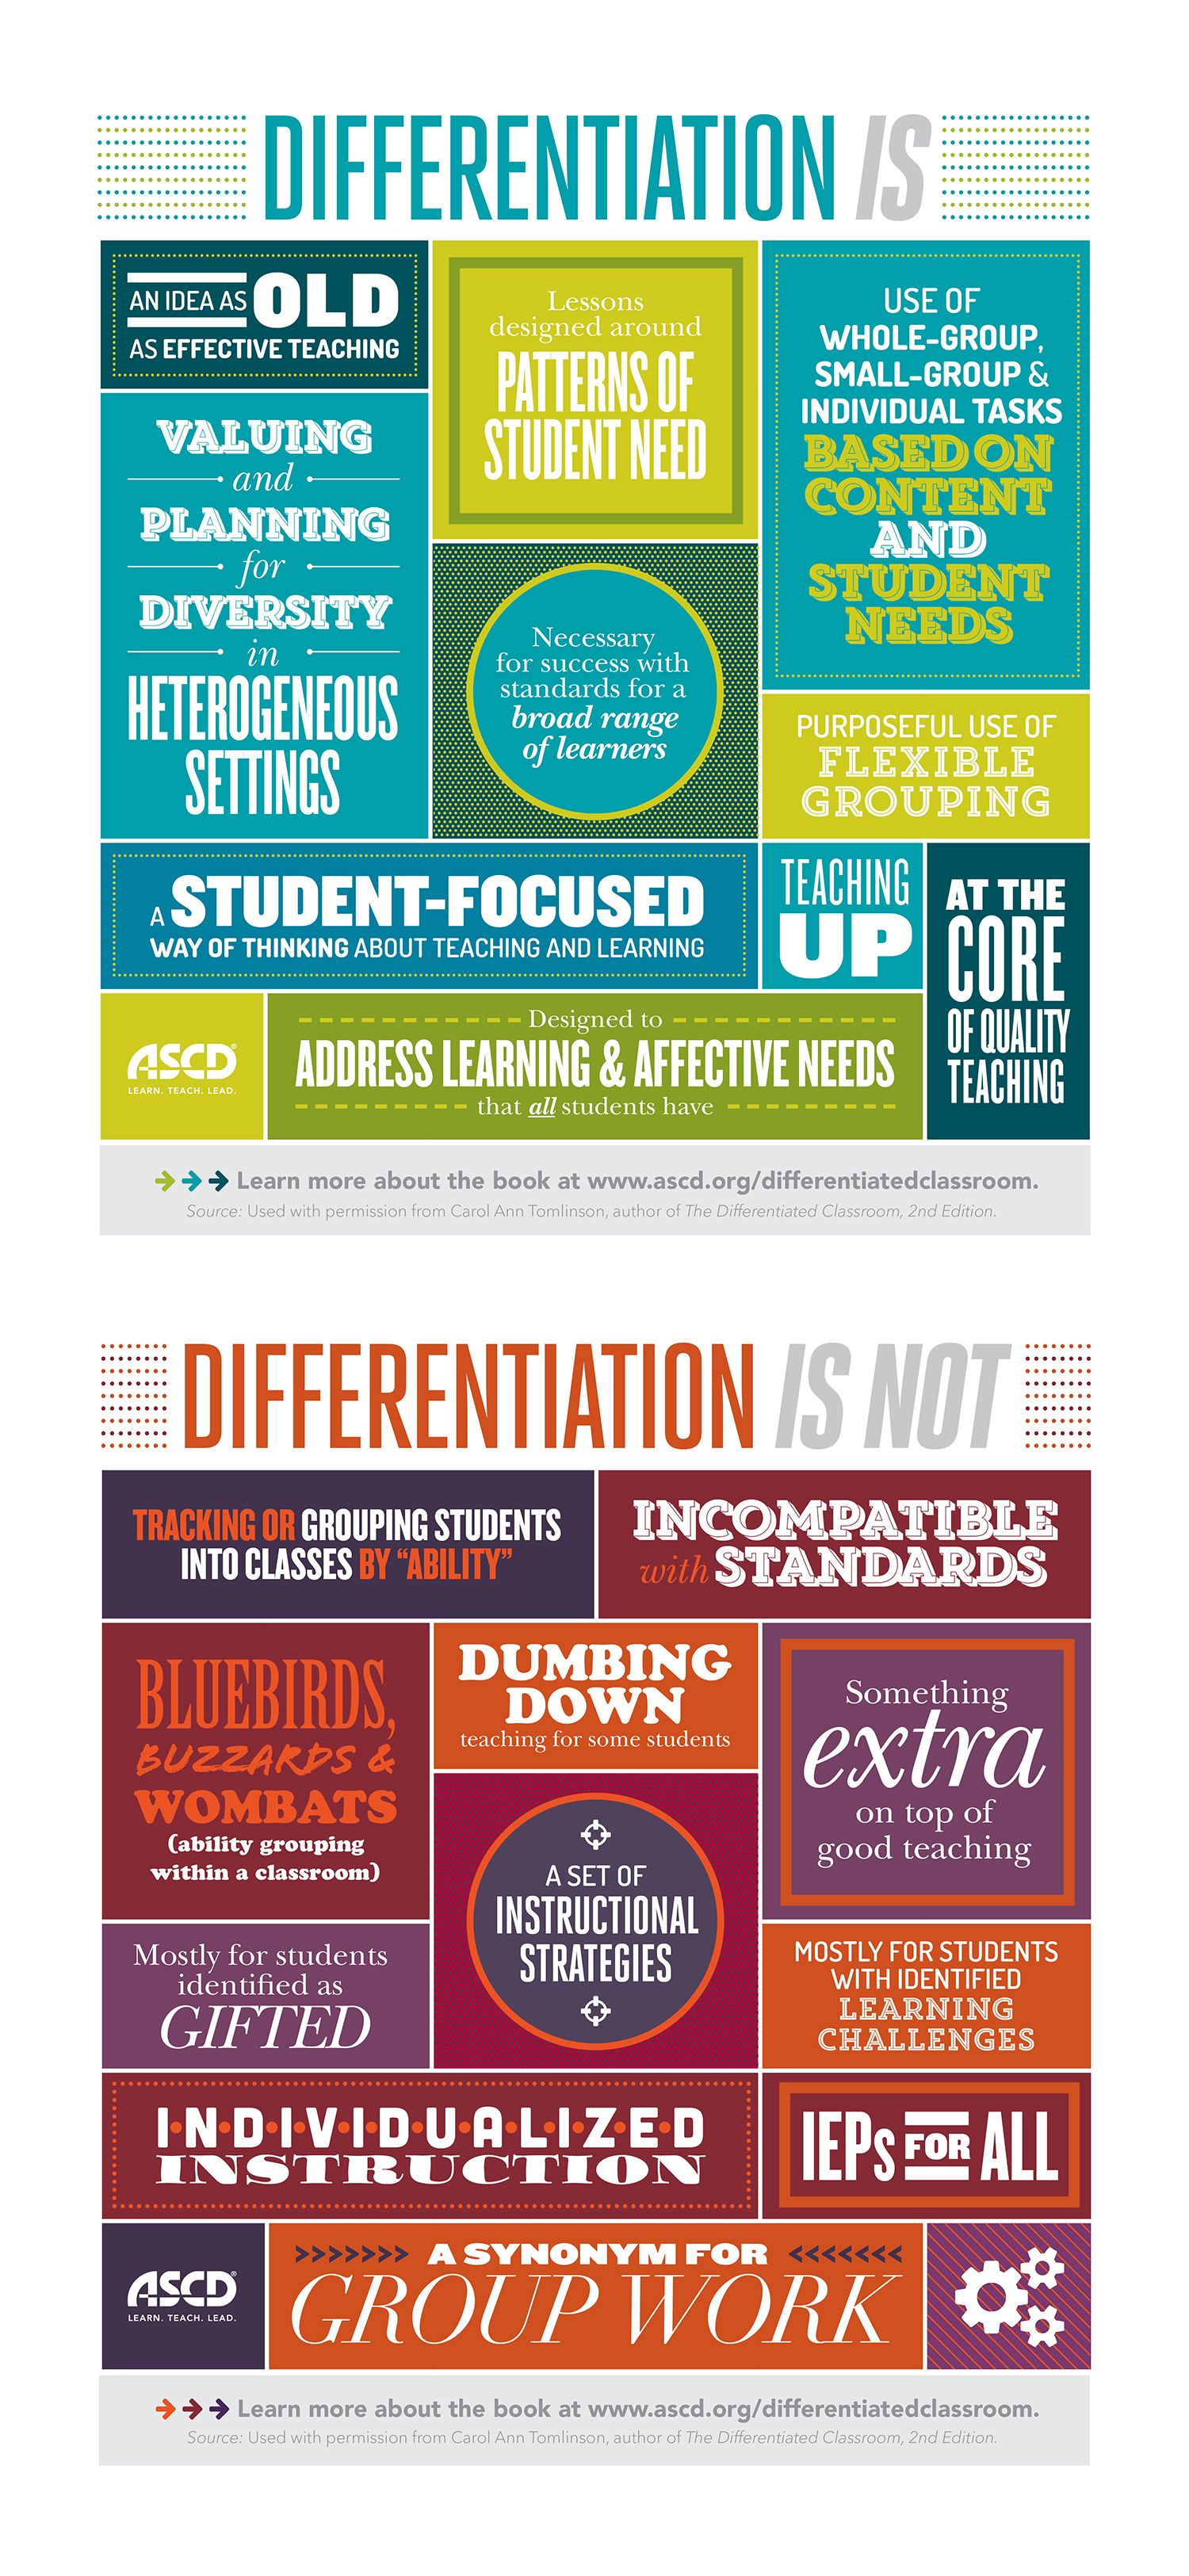 Why Differentiation Misses Mark For >> Here S A Snapshot Of Differentiation In Terms Of What It Is And Is